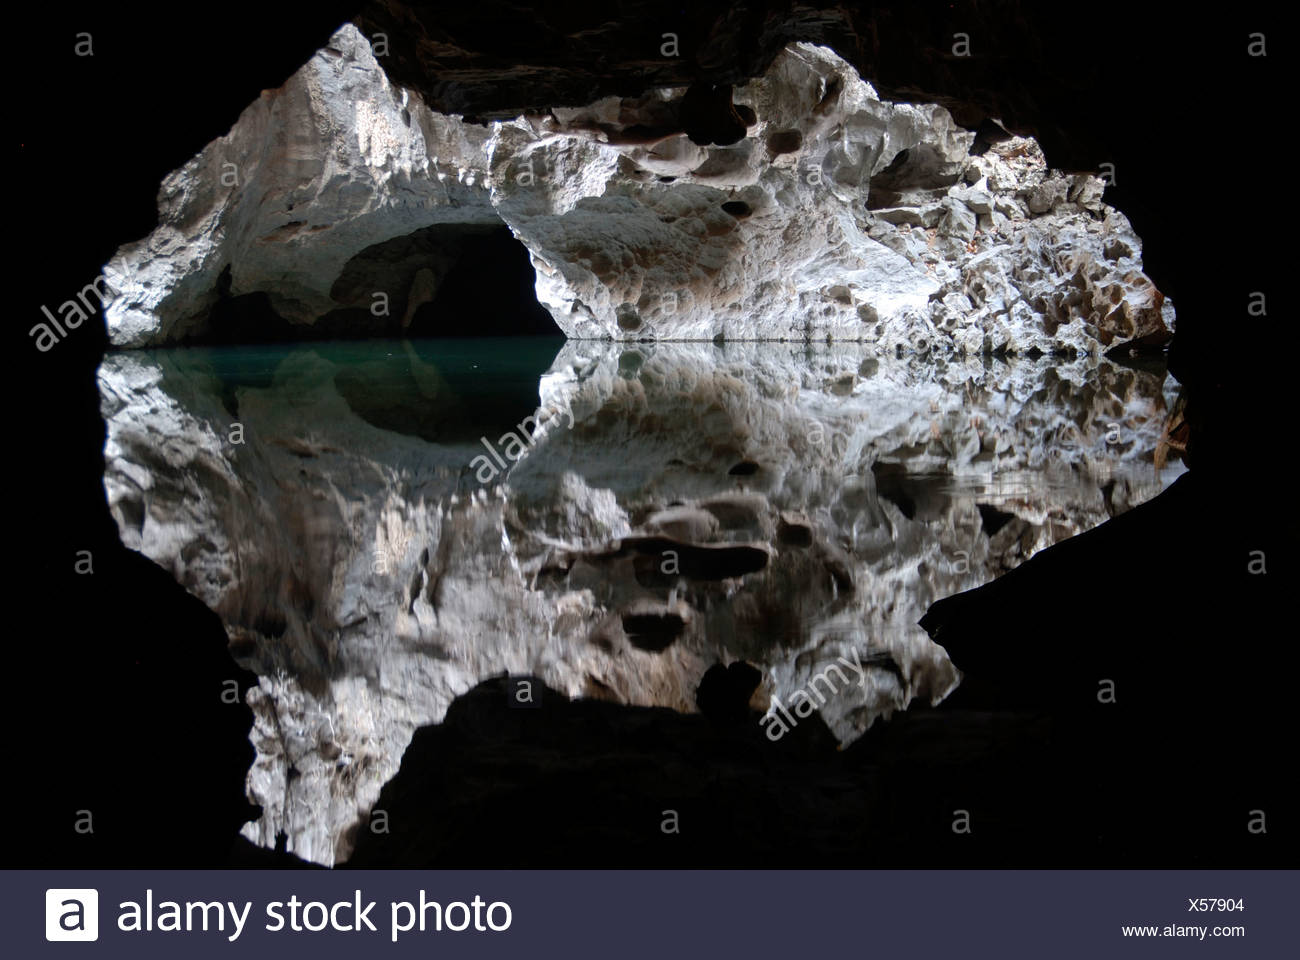 Potholing, speleology, quiet lake, reflection, water in the Tham Pha Incave in Thakek, Khammuan province, Khammouane, Laos - Stock Image